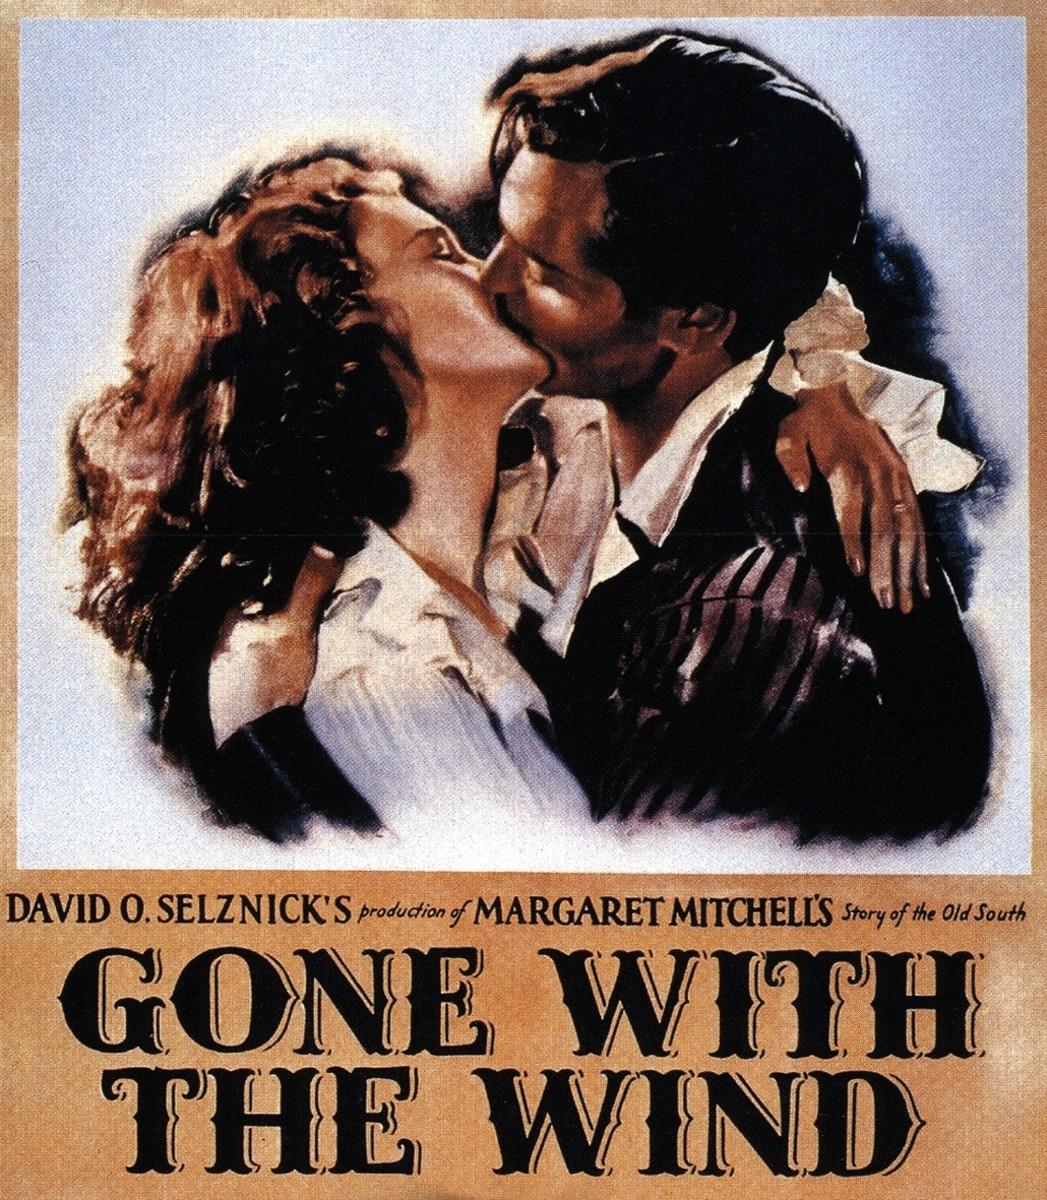 gone with the wind a classification essay Join now log in home literature essays gone with the wind popularity of gone with the wind gone with the wind popularity of gone with the wind theoderek wayne.